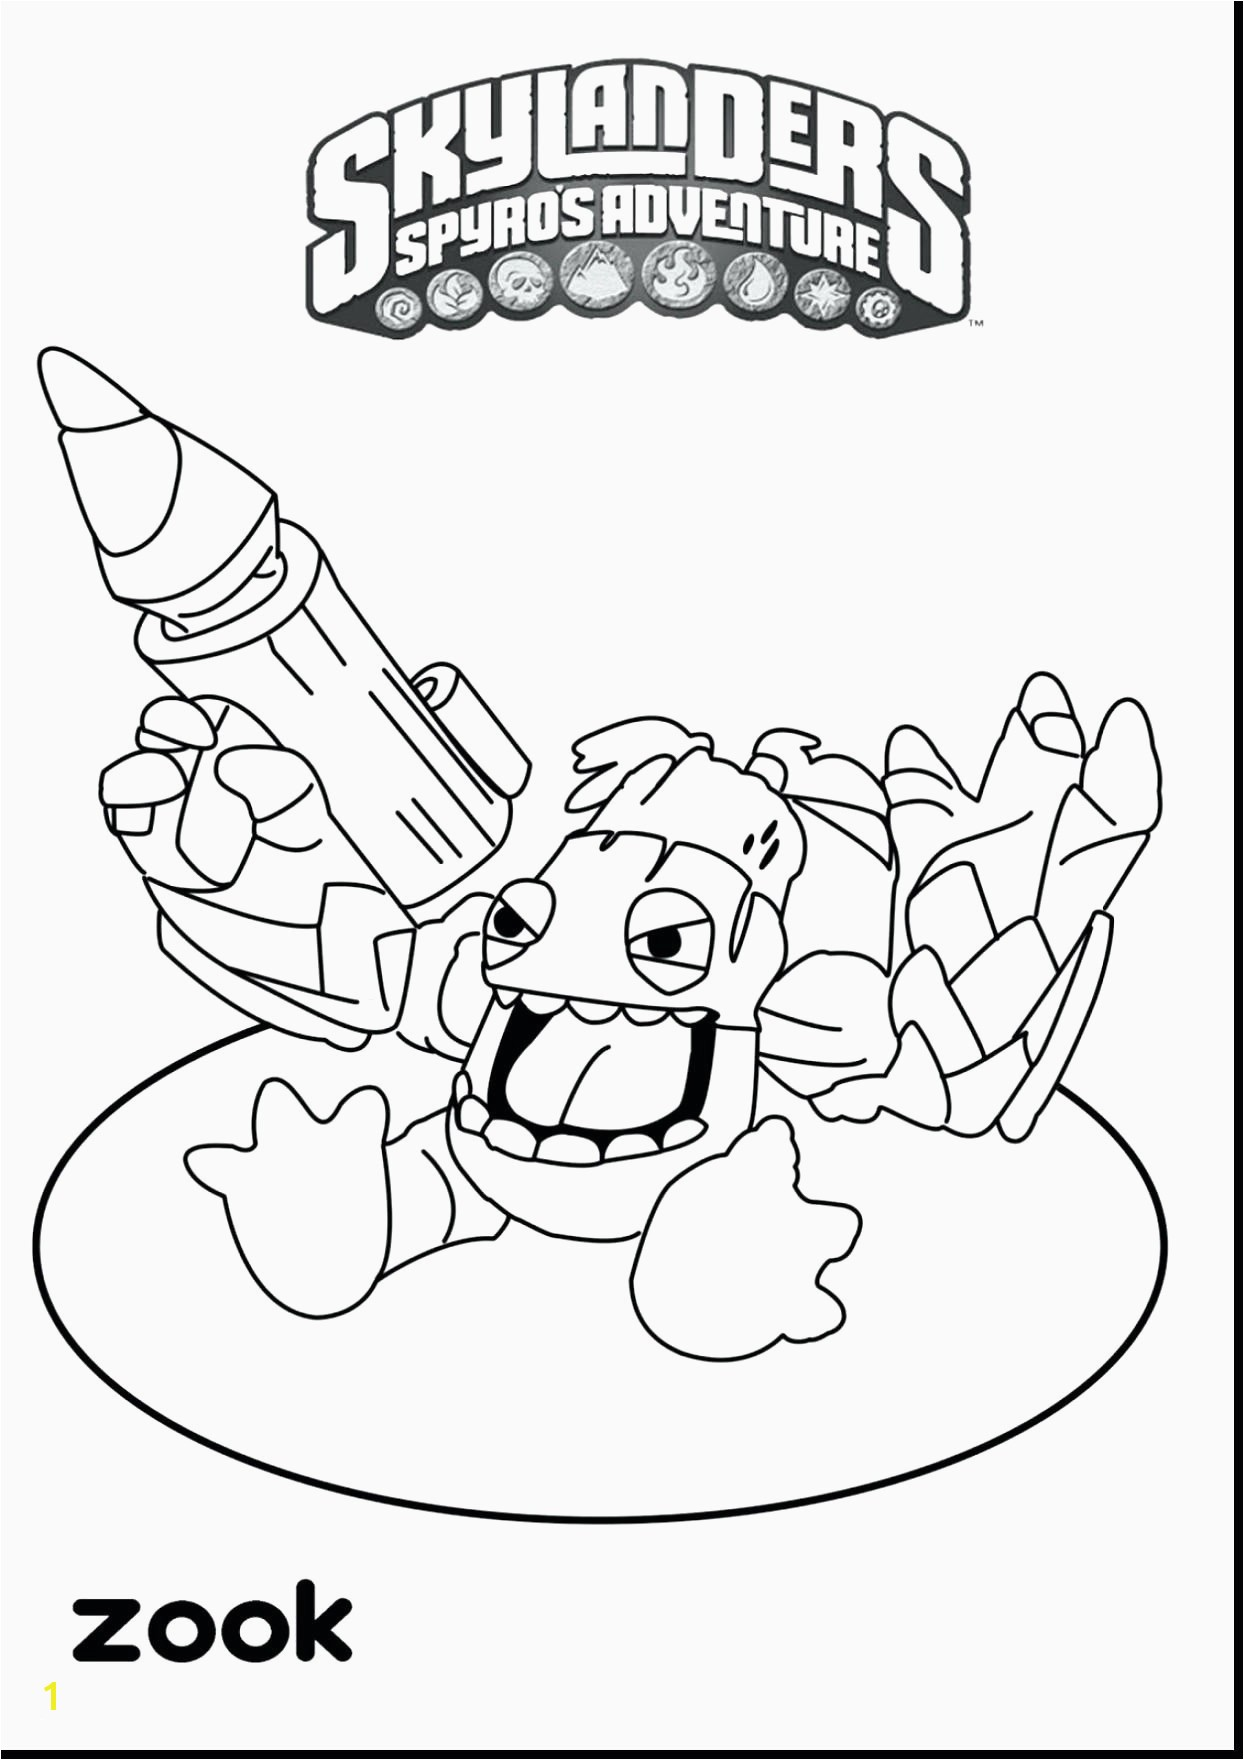 Ben 10 Coloring Pages Upgrade Beautiful Printing Coloring Book Heathermarxgallery Ben 10 Coloring Pages Upgrade